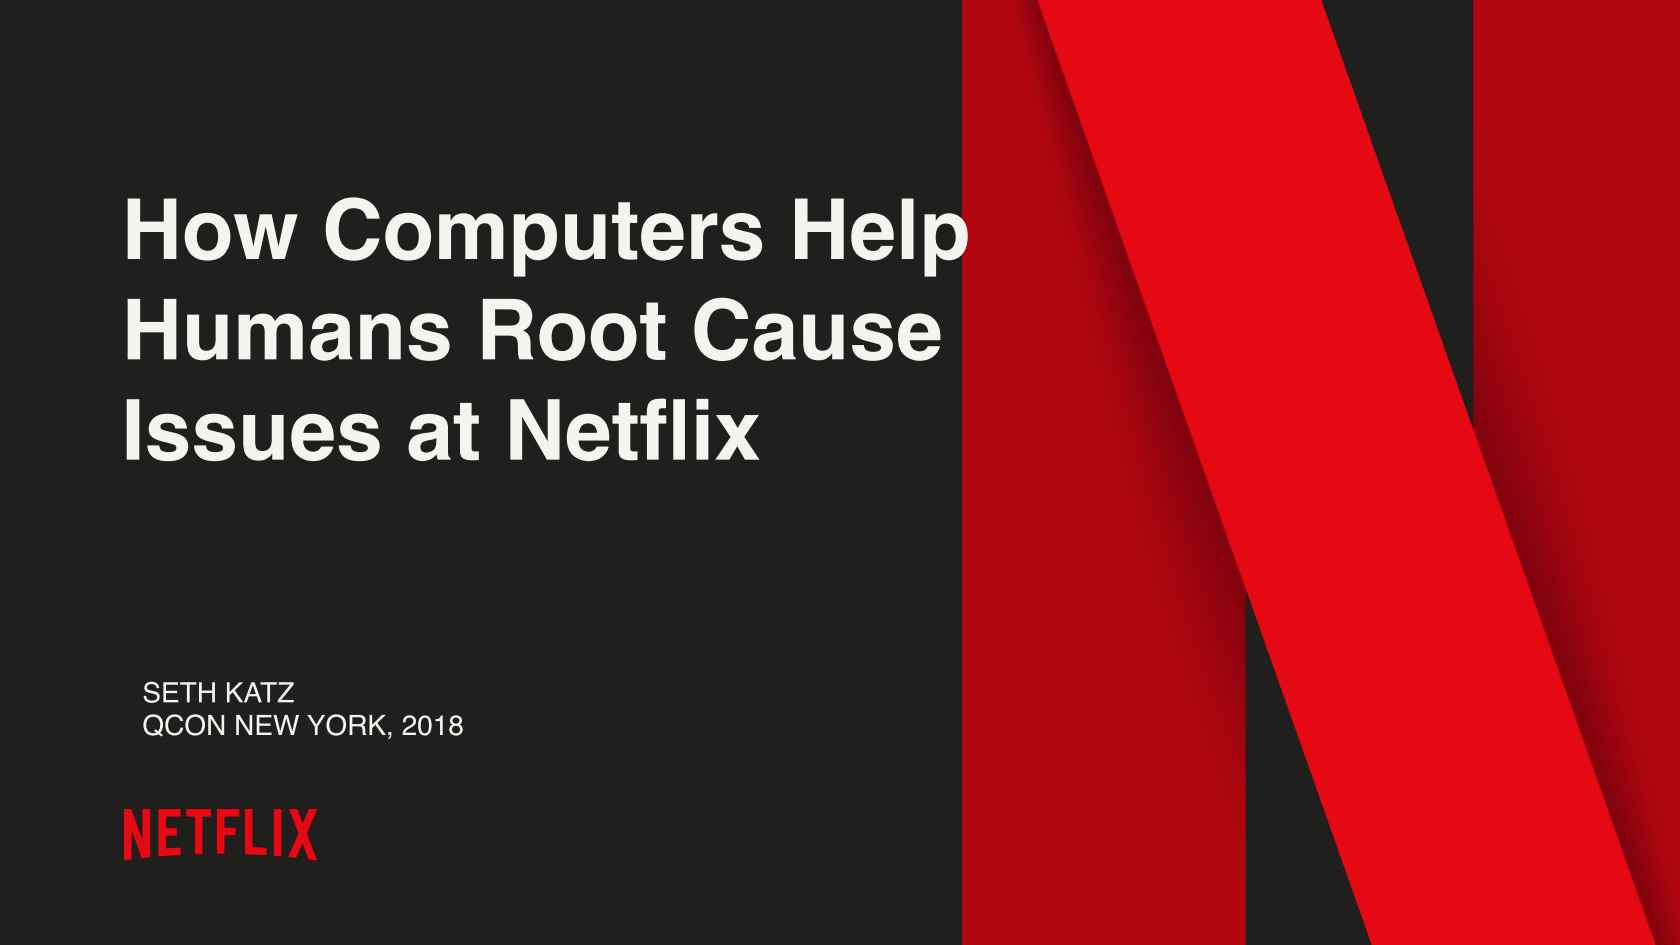 How Machines Help Humans Root Case Issues @ Netflix